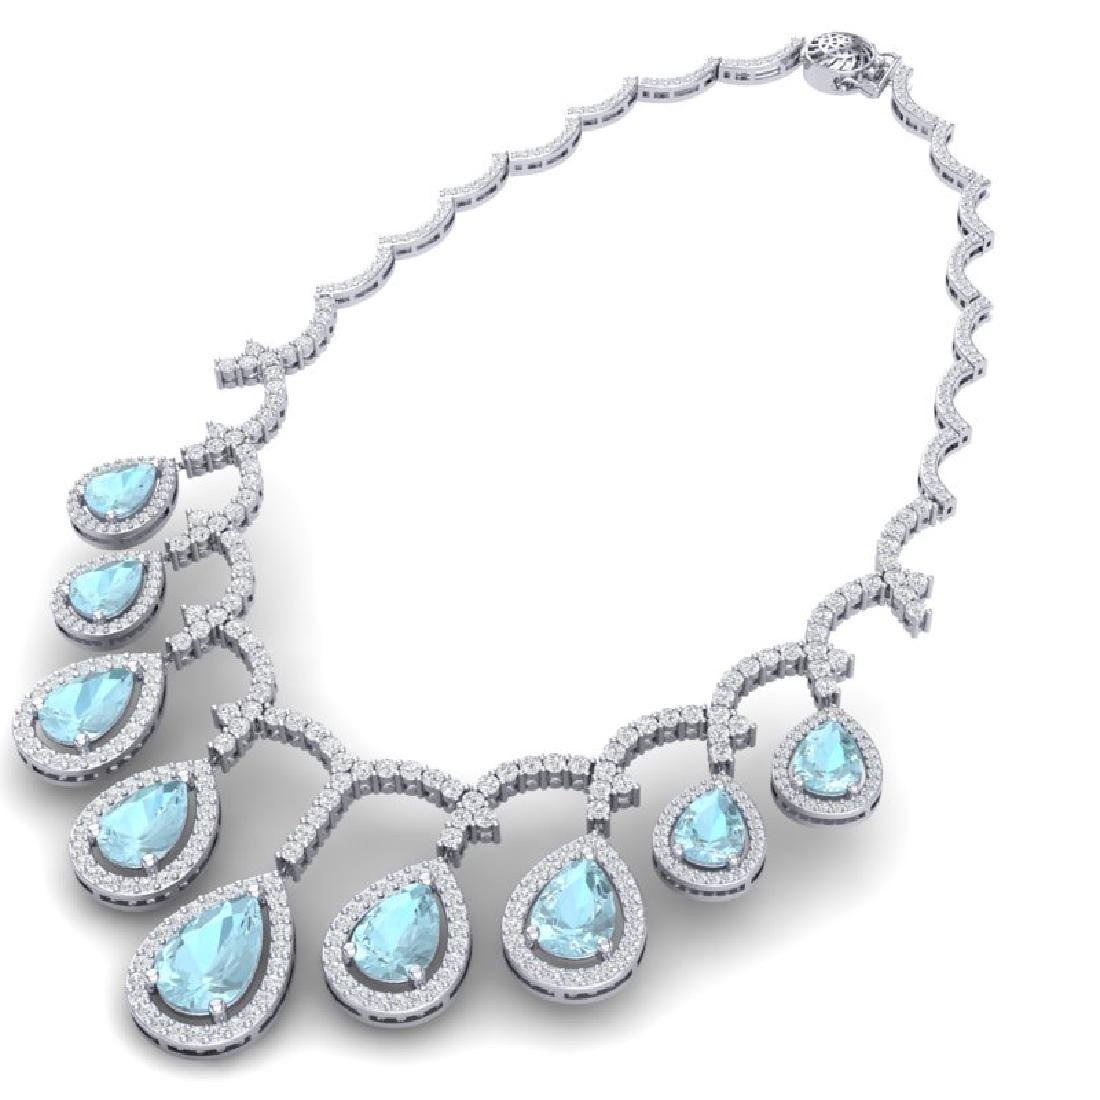 32.62 CTW Royalty Sky Topaz & VS Diamond Necklace 18K - 3